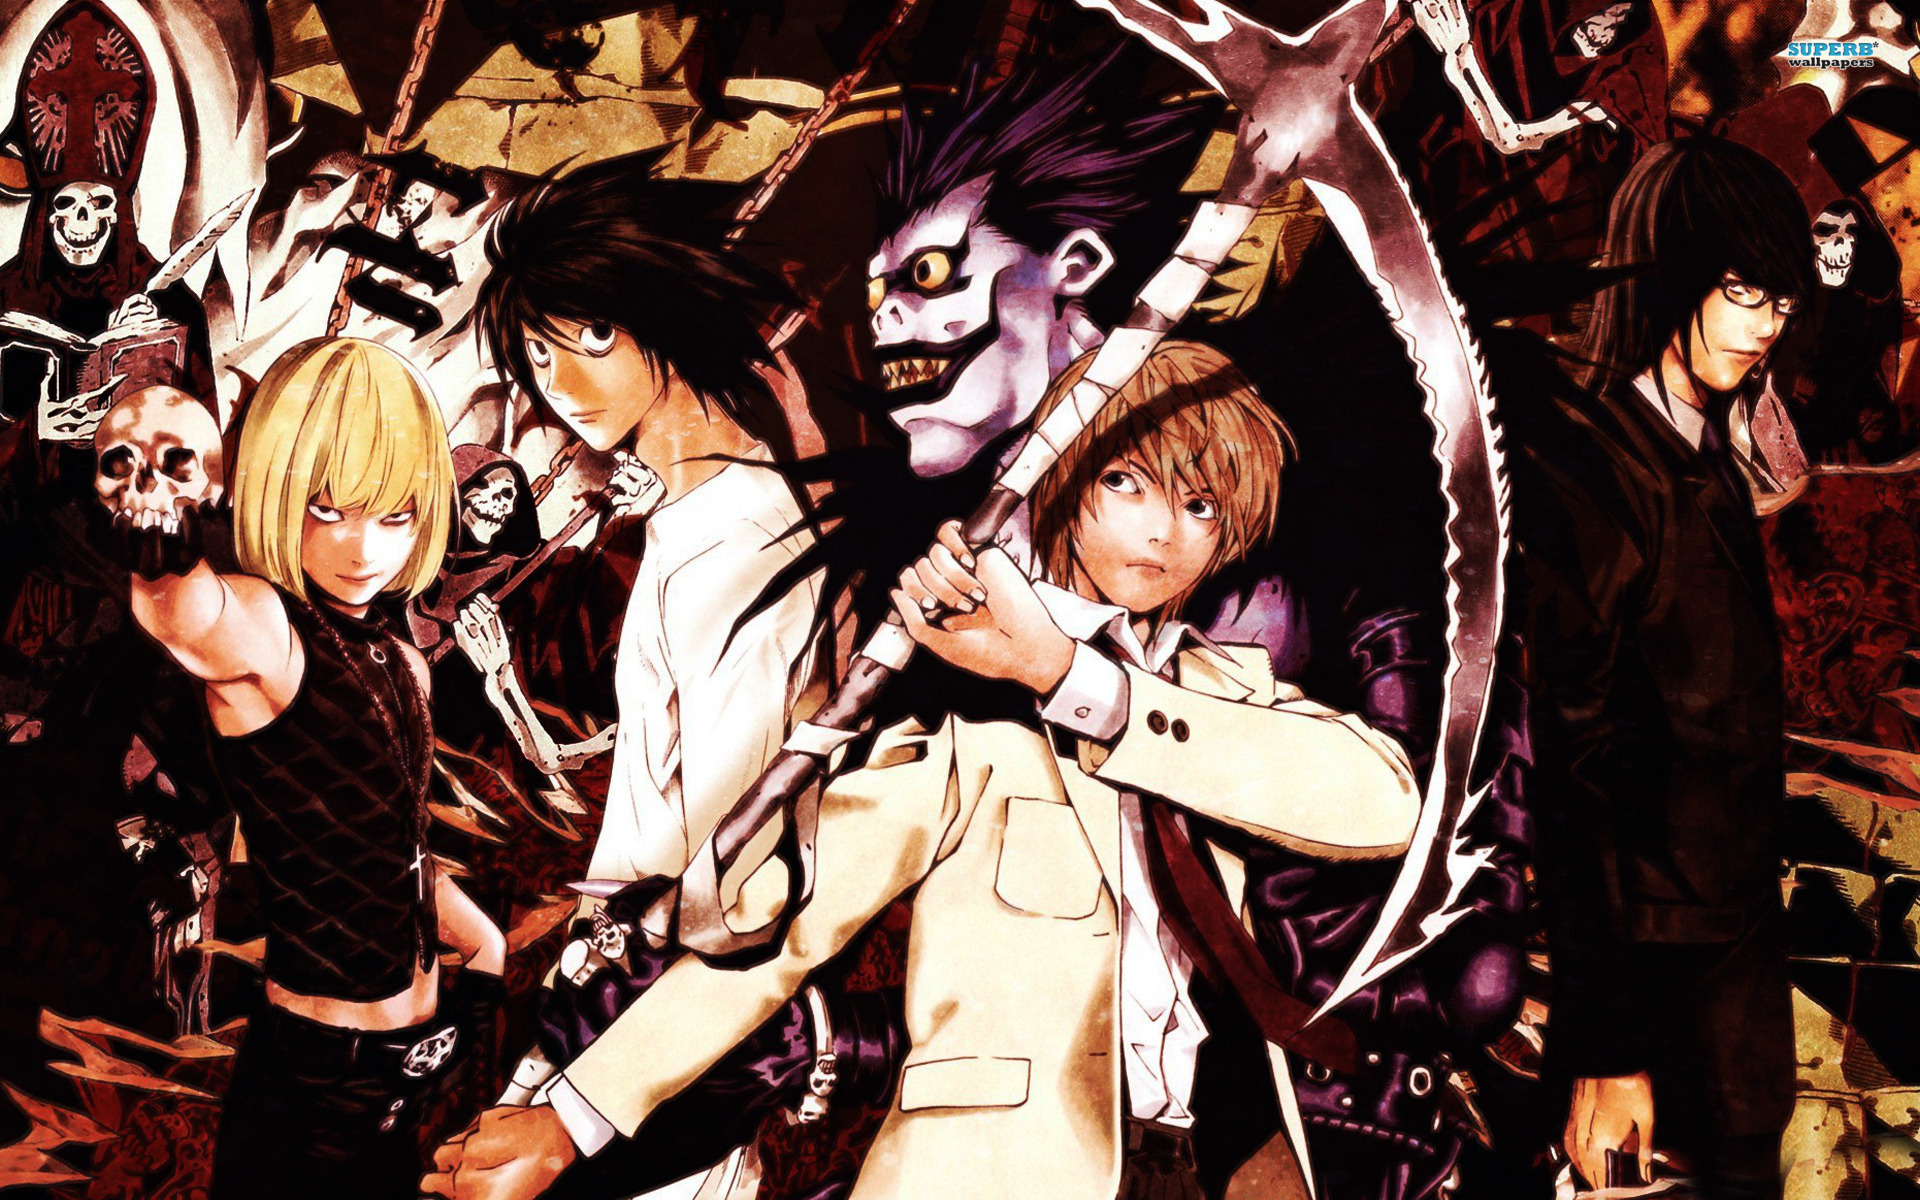 Death Note Anime Wallpapers (34 Wallpapers) - Adorable ...